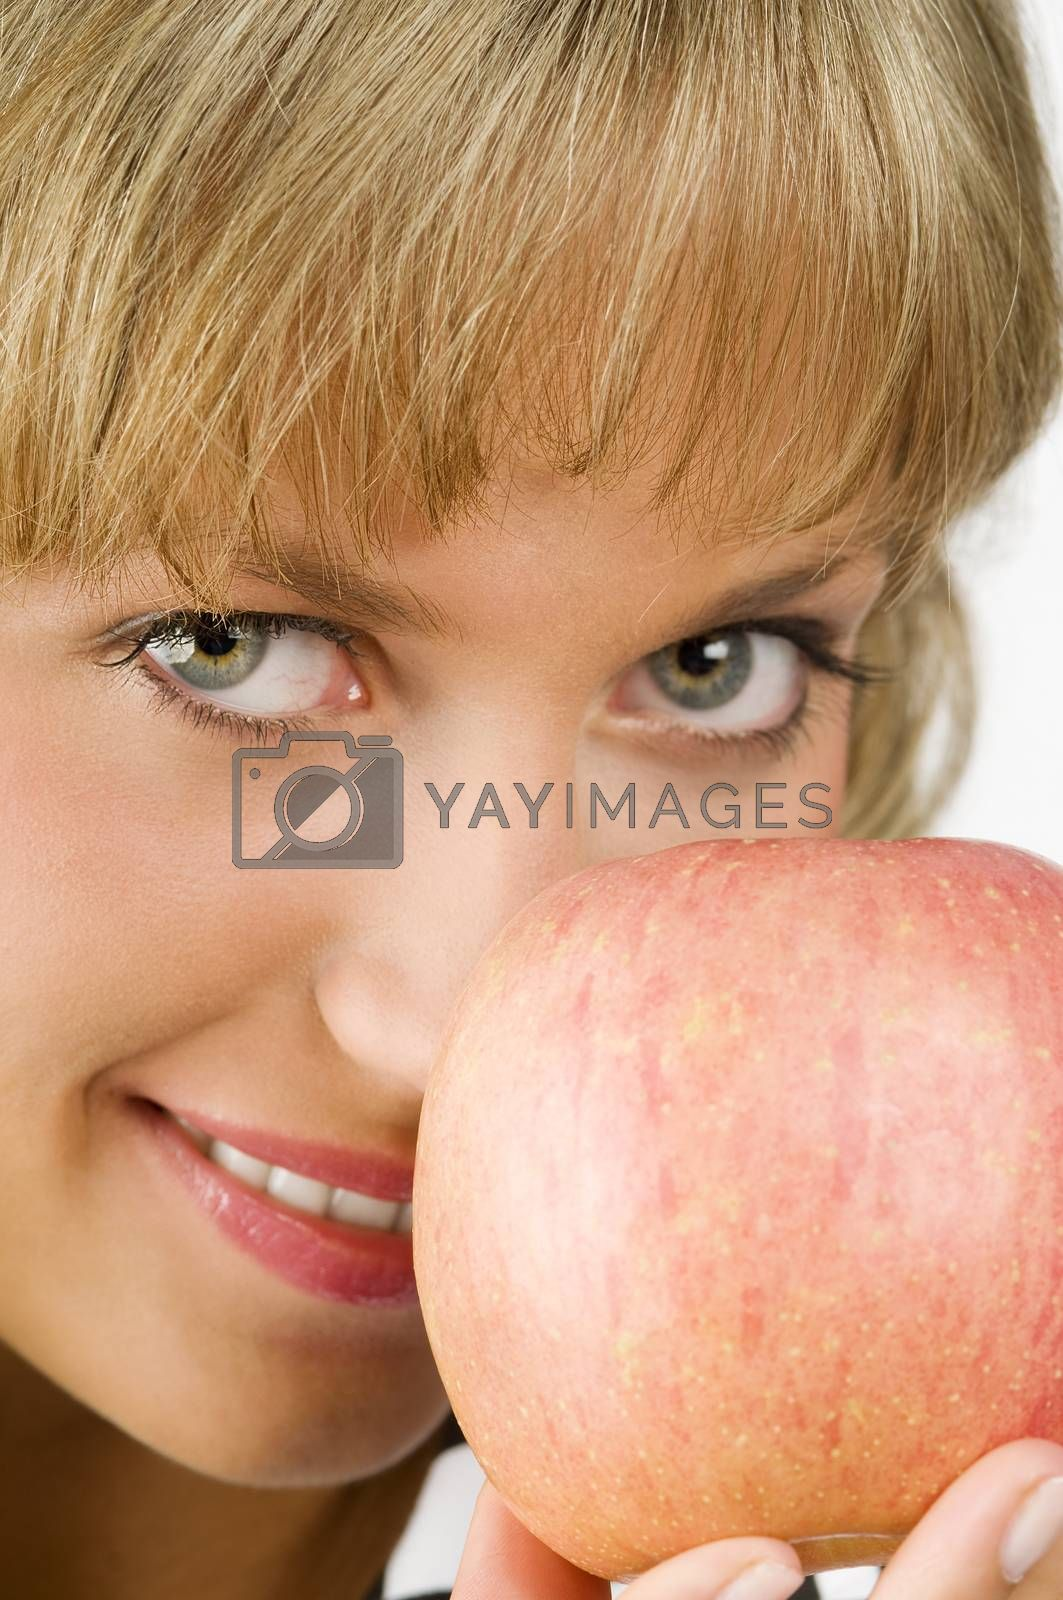 Royalty free image of apple close up  by fotoCD